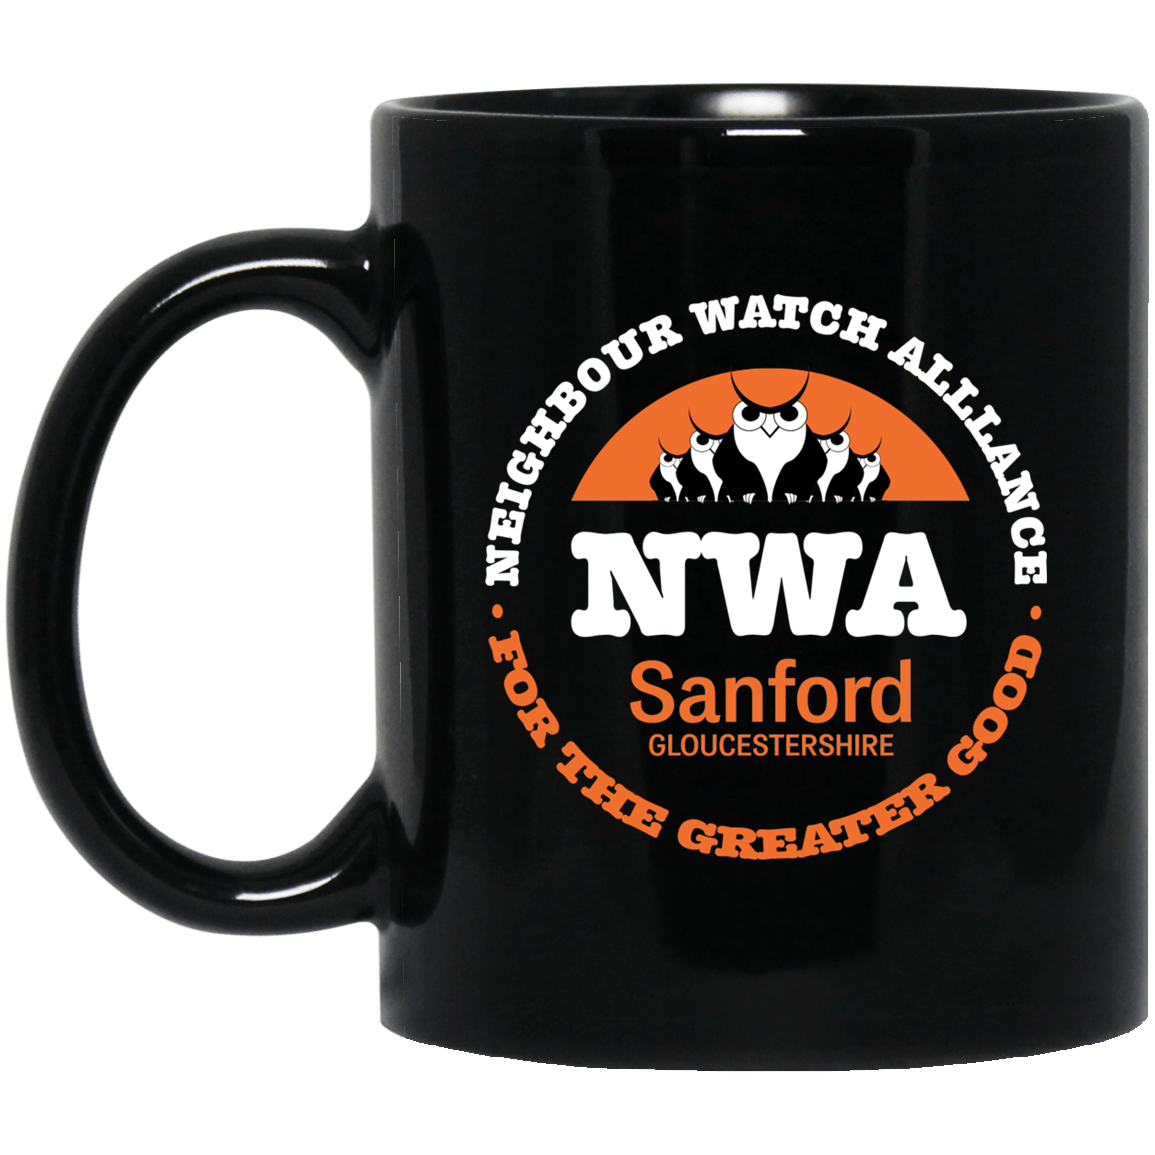 NWA Neighbourhood Watch Alllance For The Greater Good Mug 1065-10181-91587445-49307 - Tee Ript